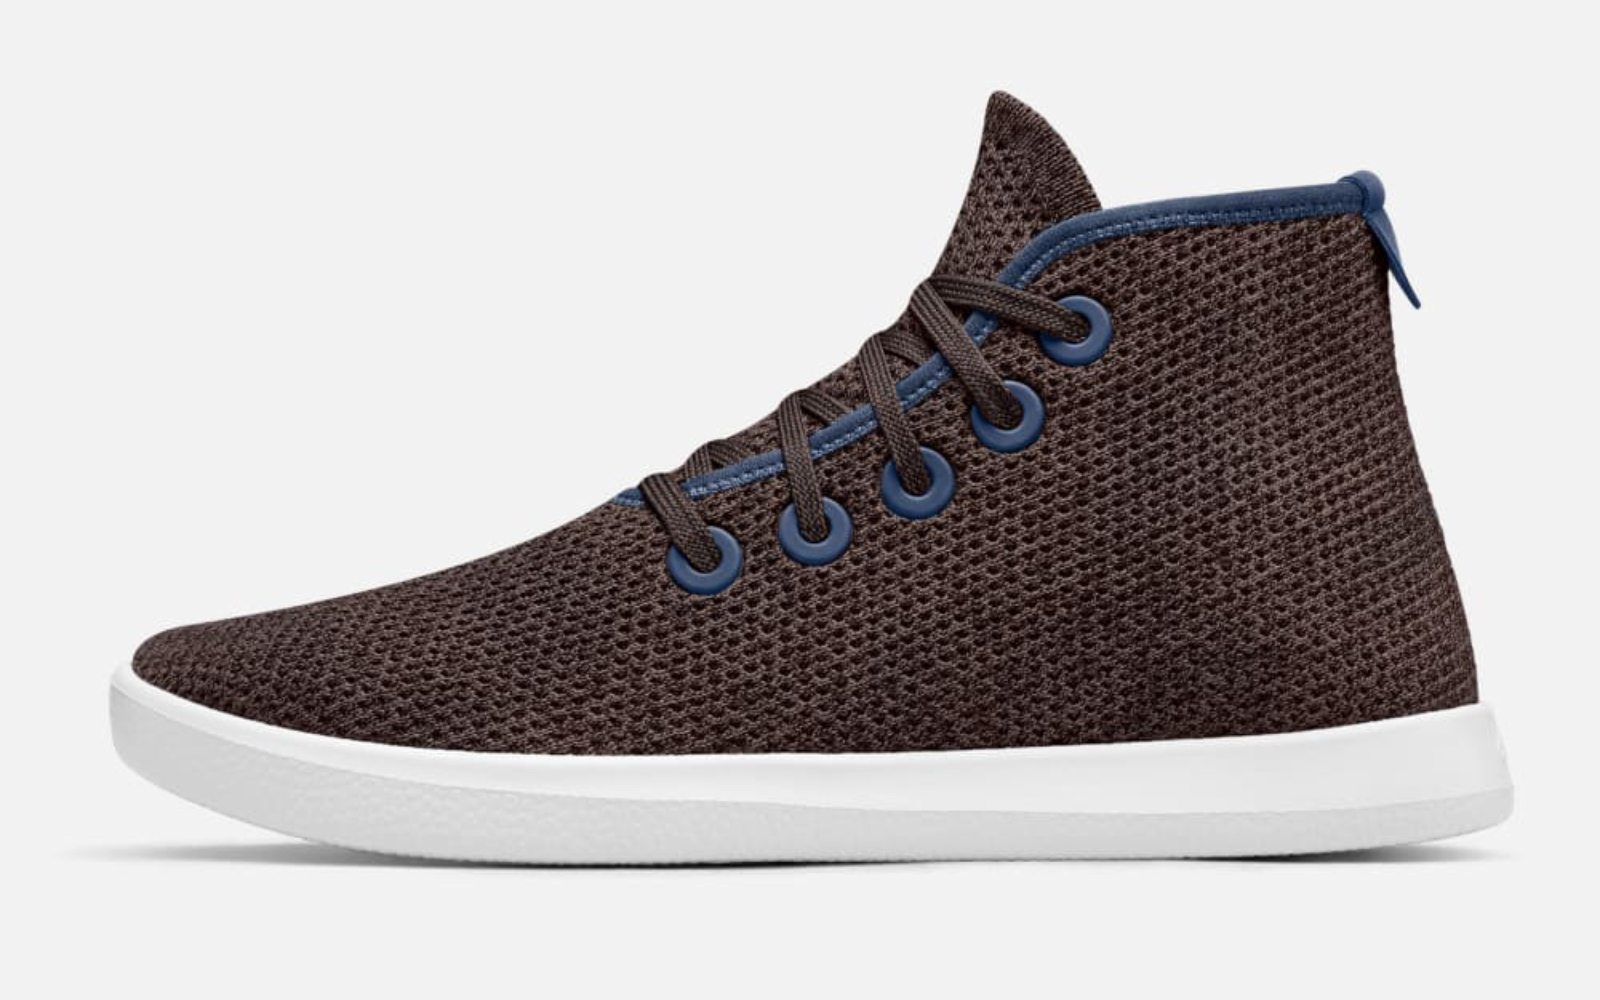 Allbirds Tree Toppers in Cocoa (White Sole)